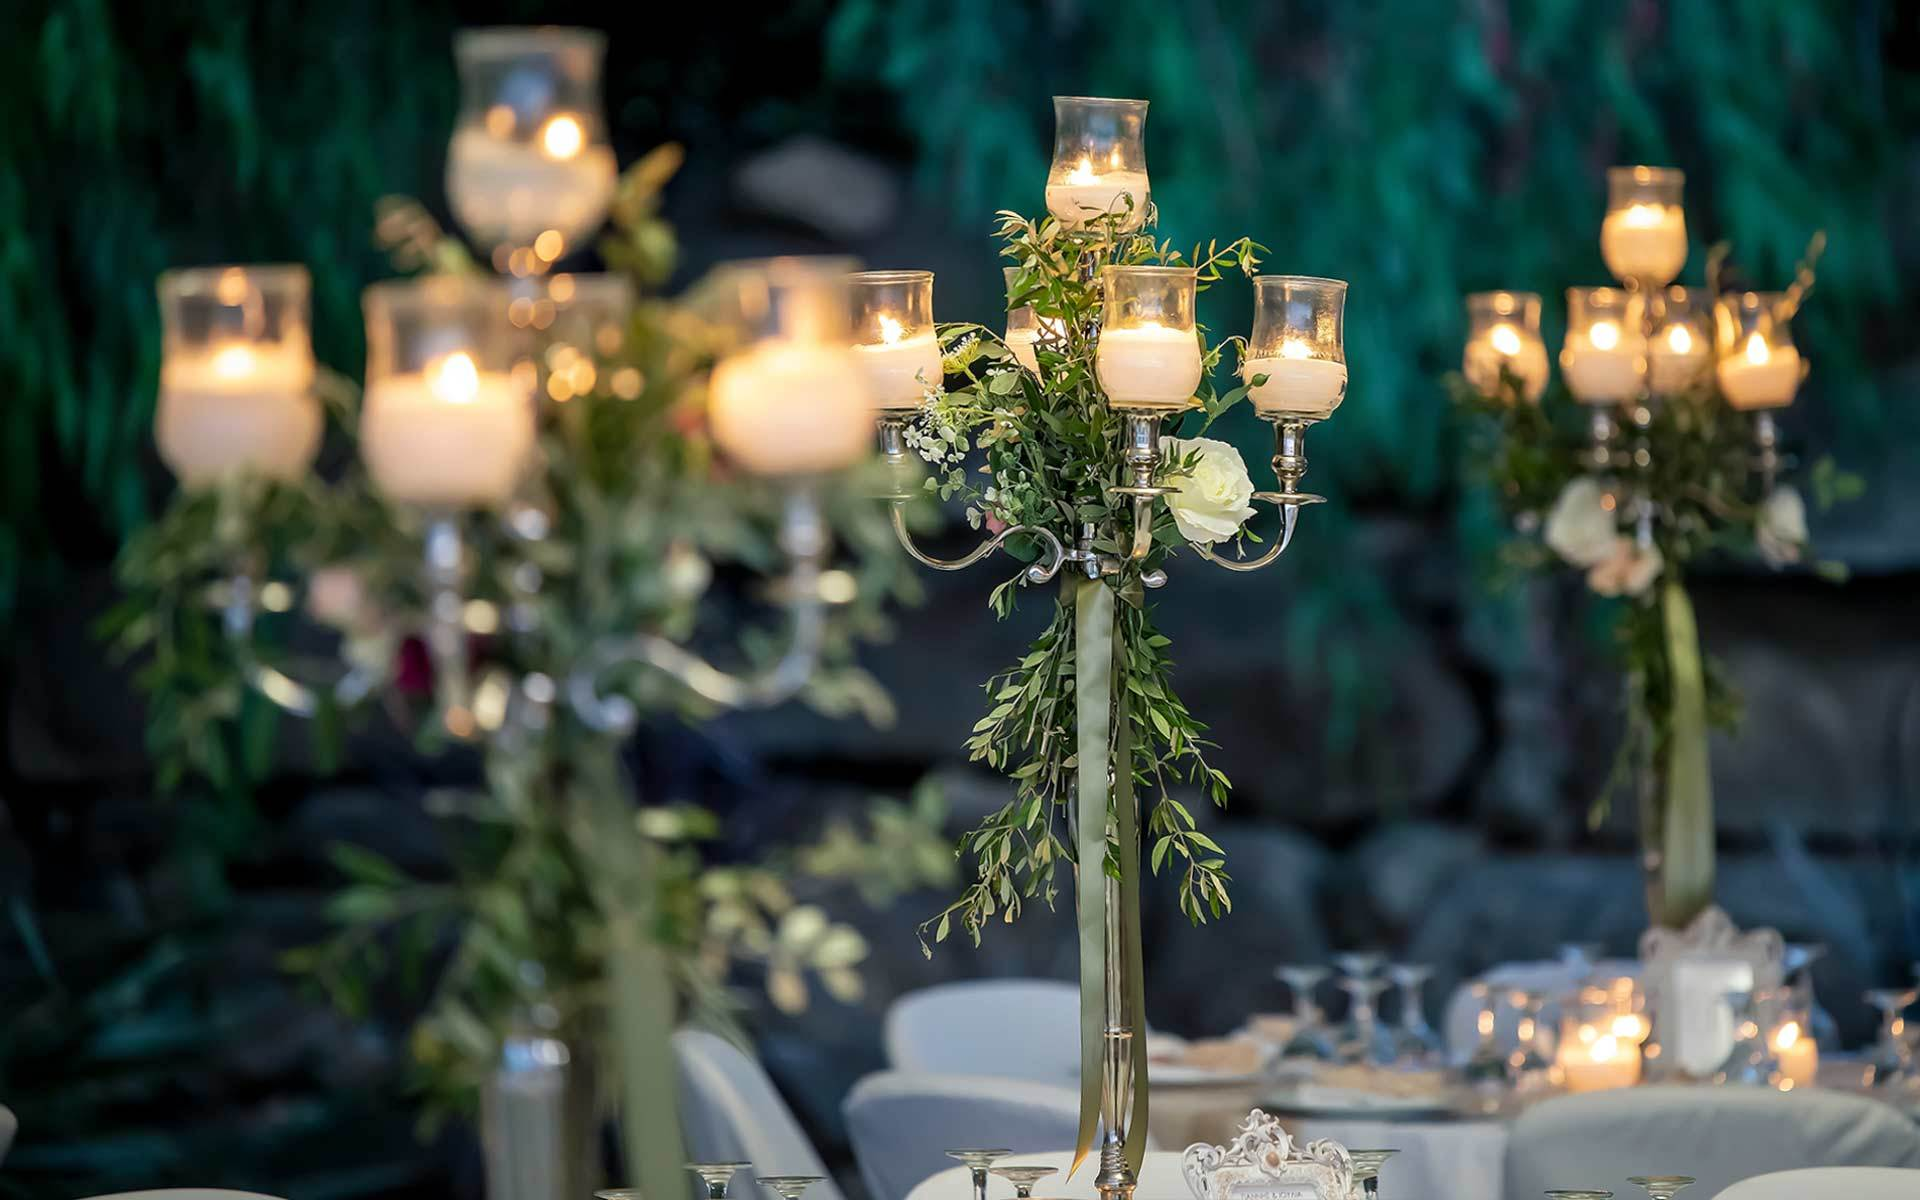 Rustic-wedding-table-decor-with-candelabras-with-olive-leaf-garland-roses-green-ribbons